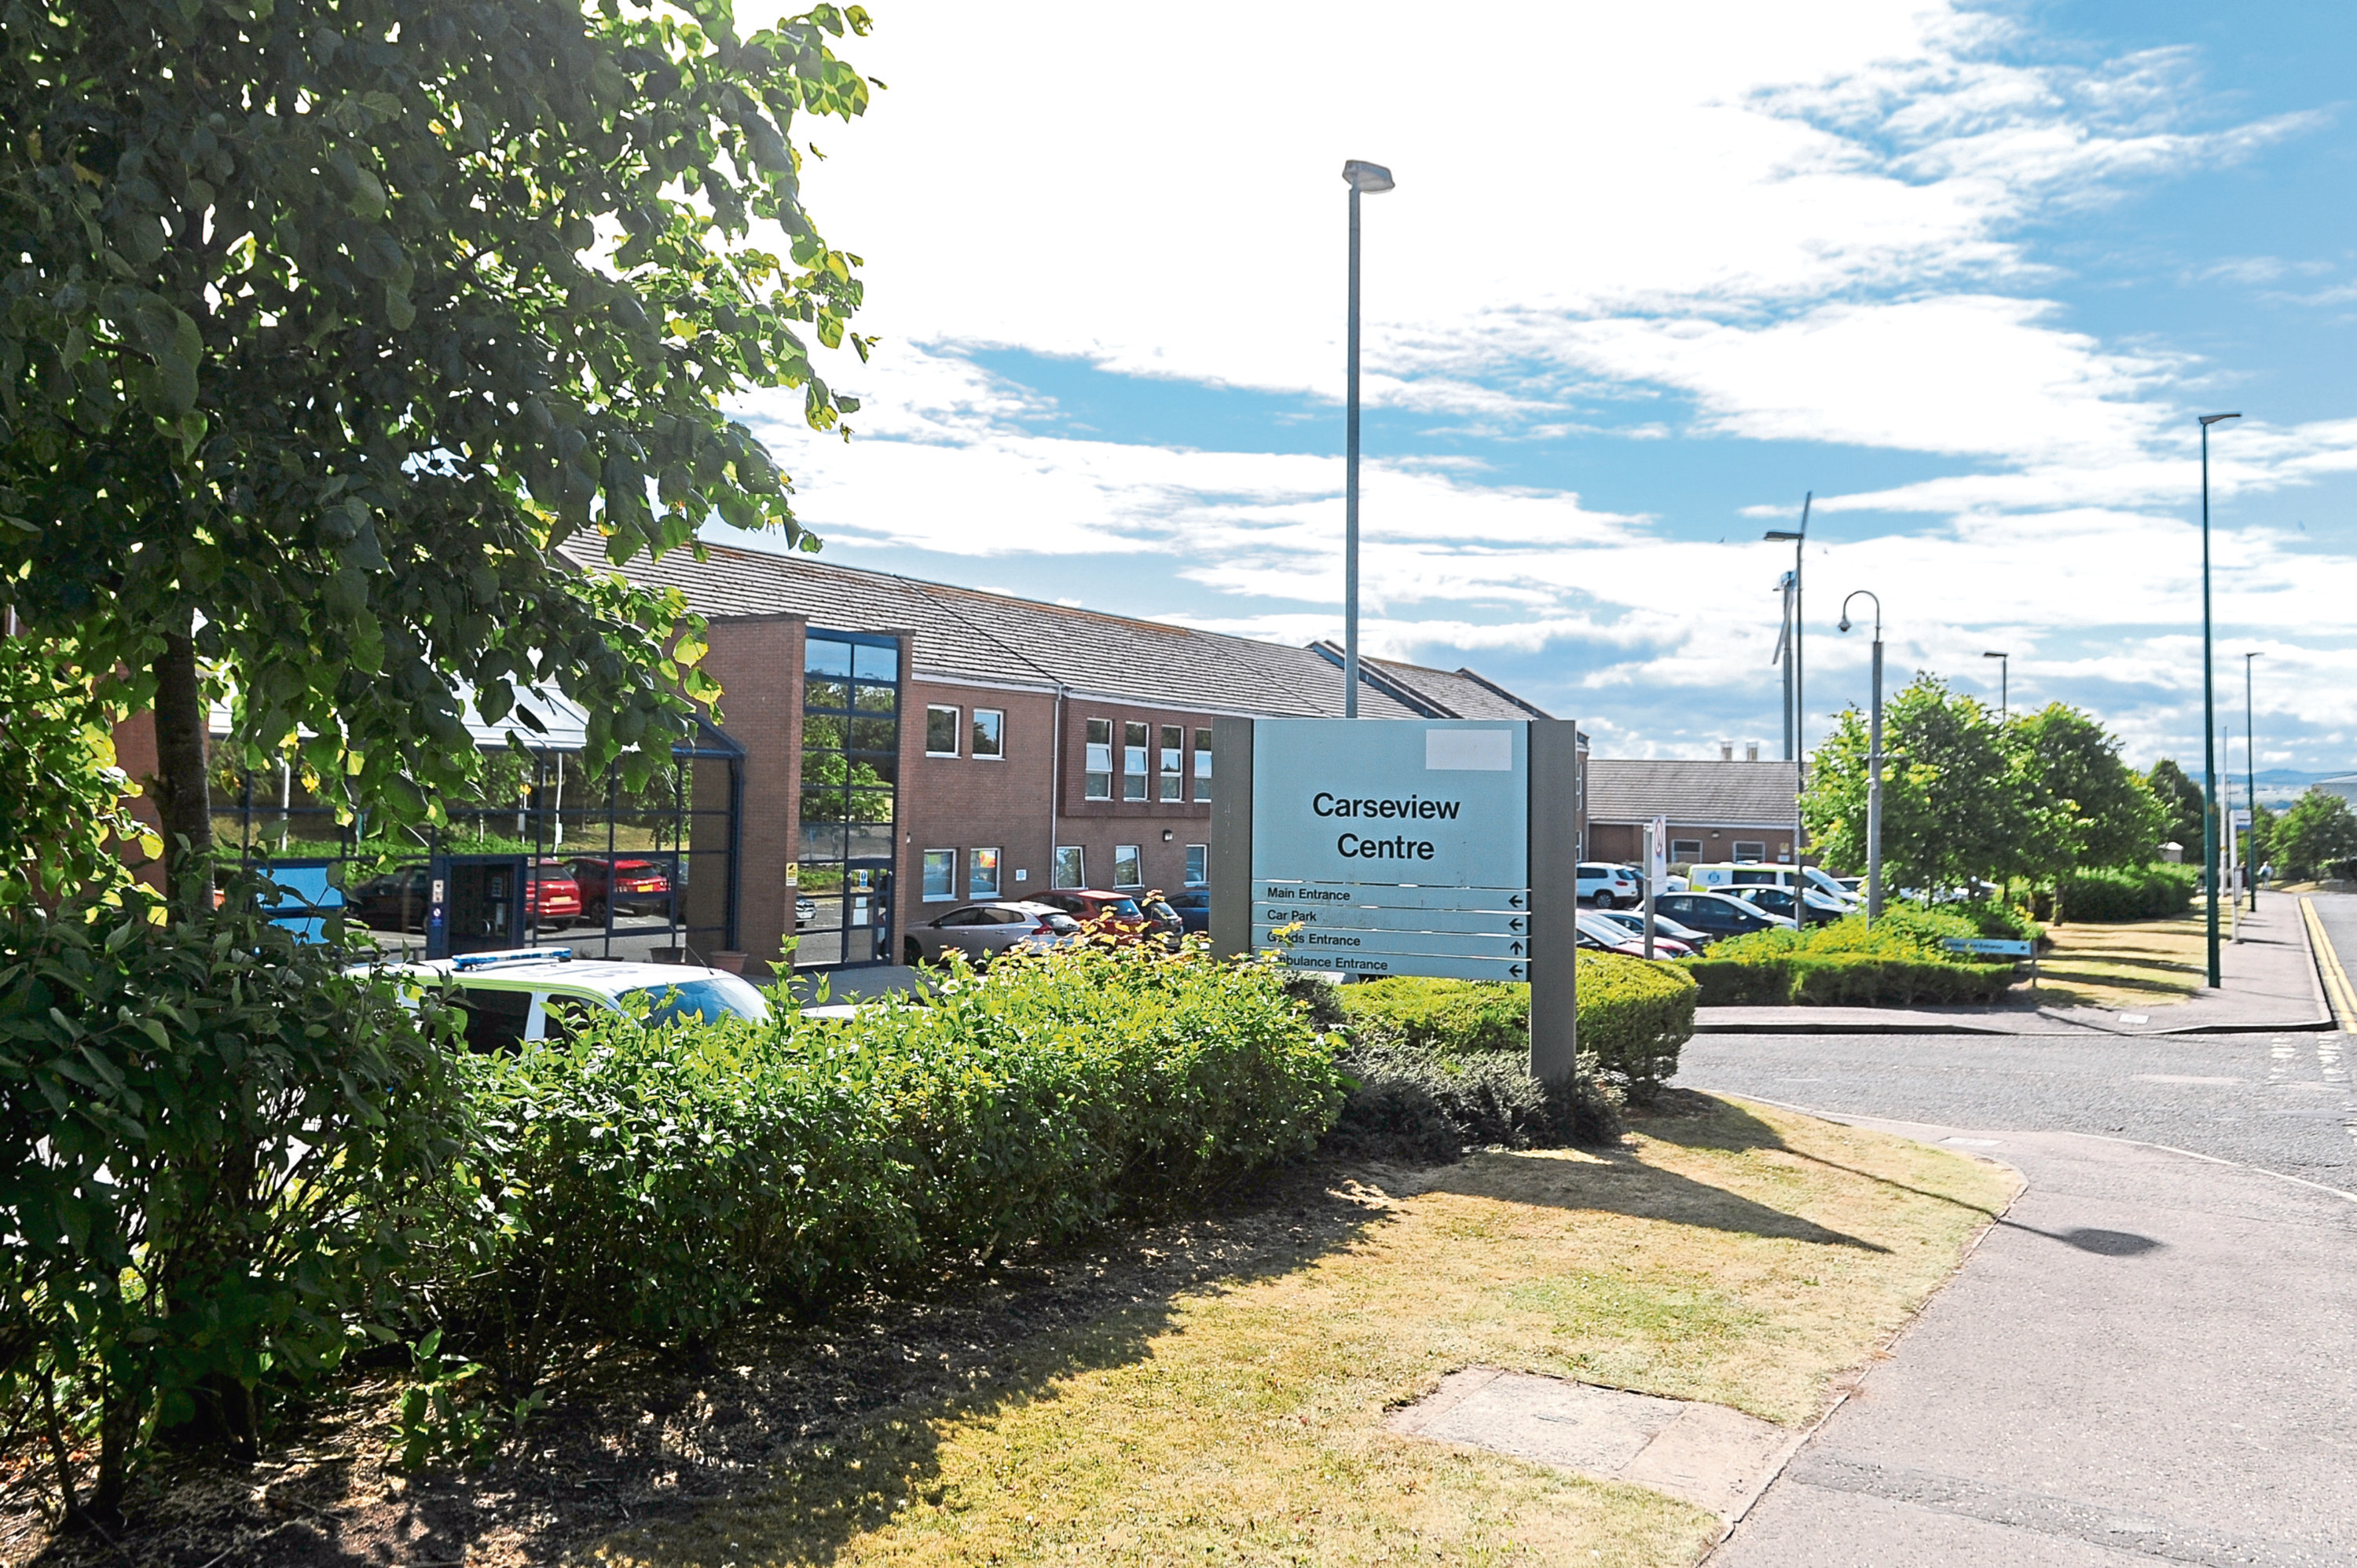 The Carseview Centre at Ninewells Hospital.